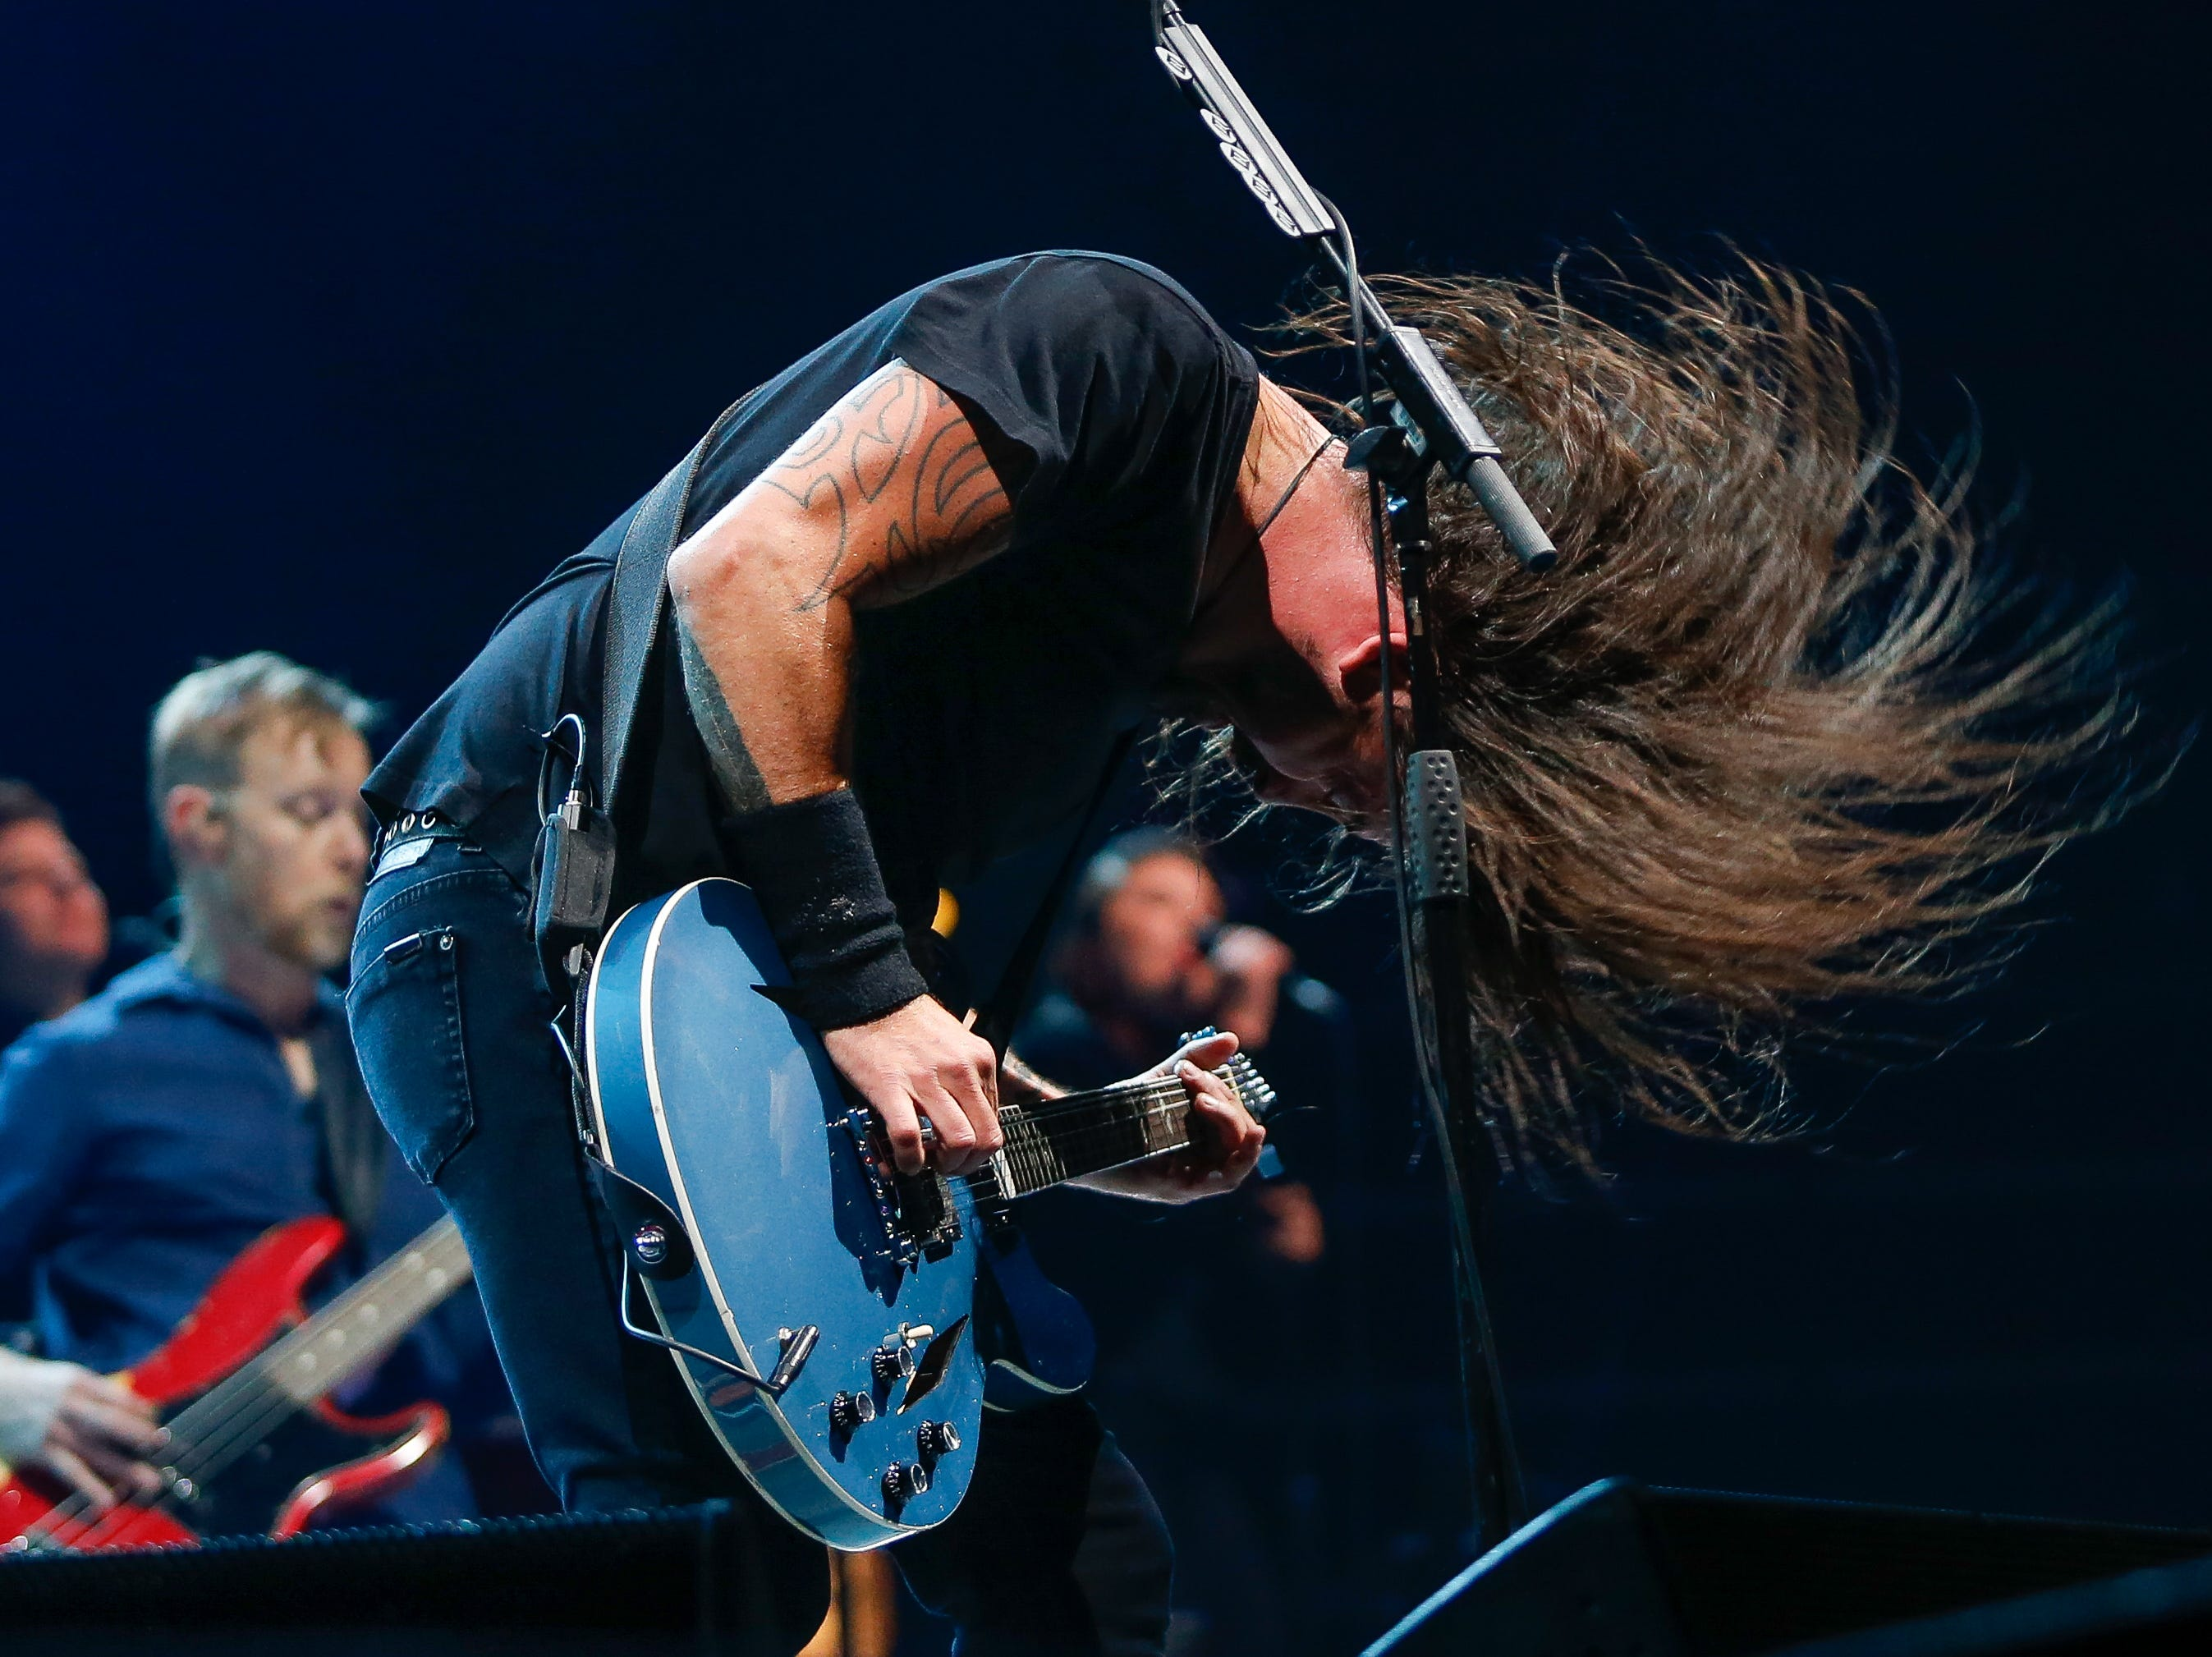 The Foo Fighters' Dave Grohl whips his long hair as he plays guitar Monday at Little Caesars Arena.